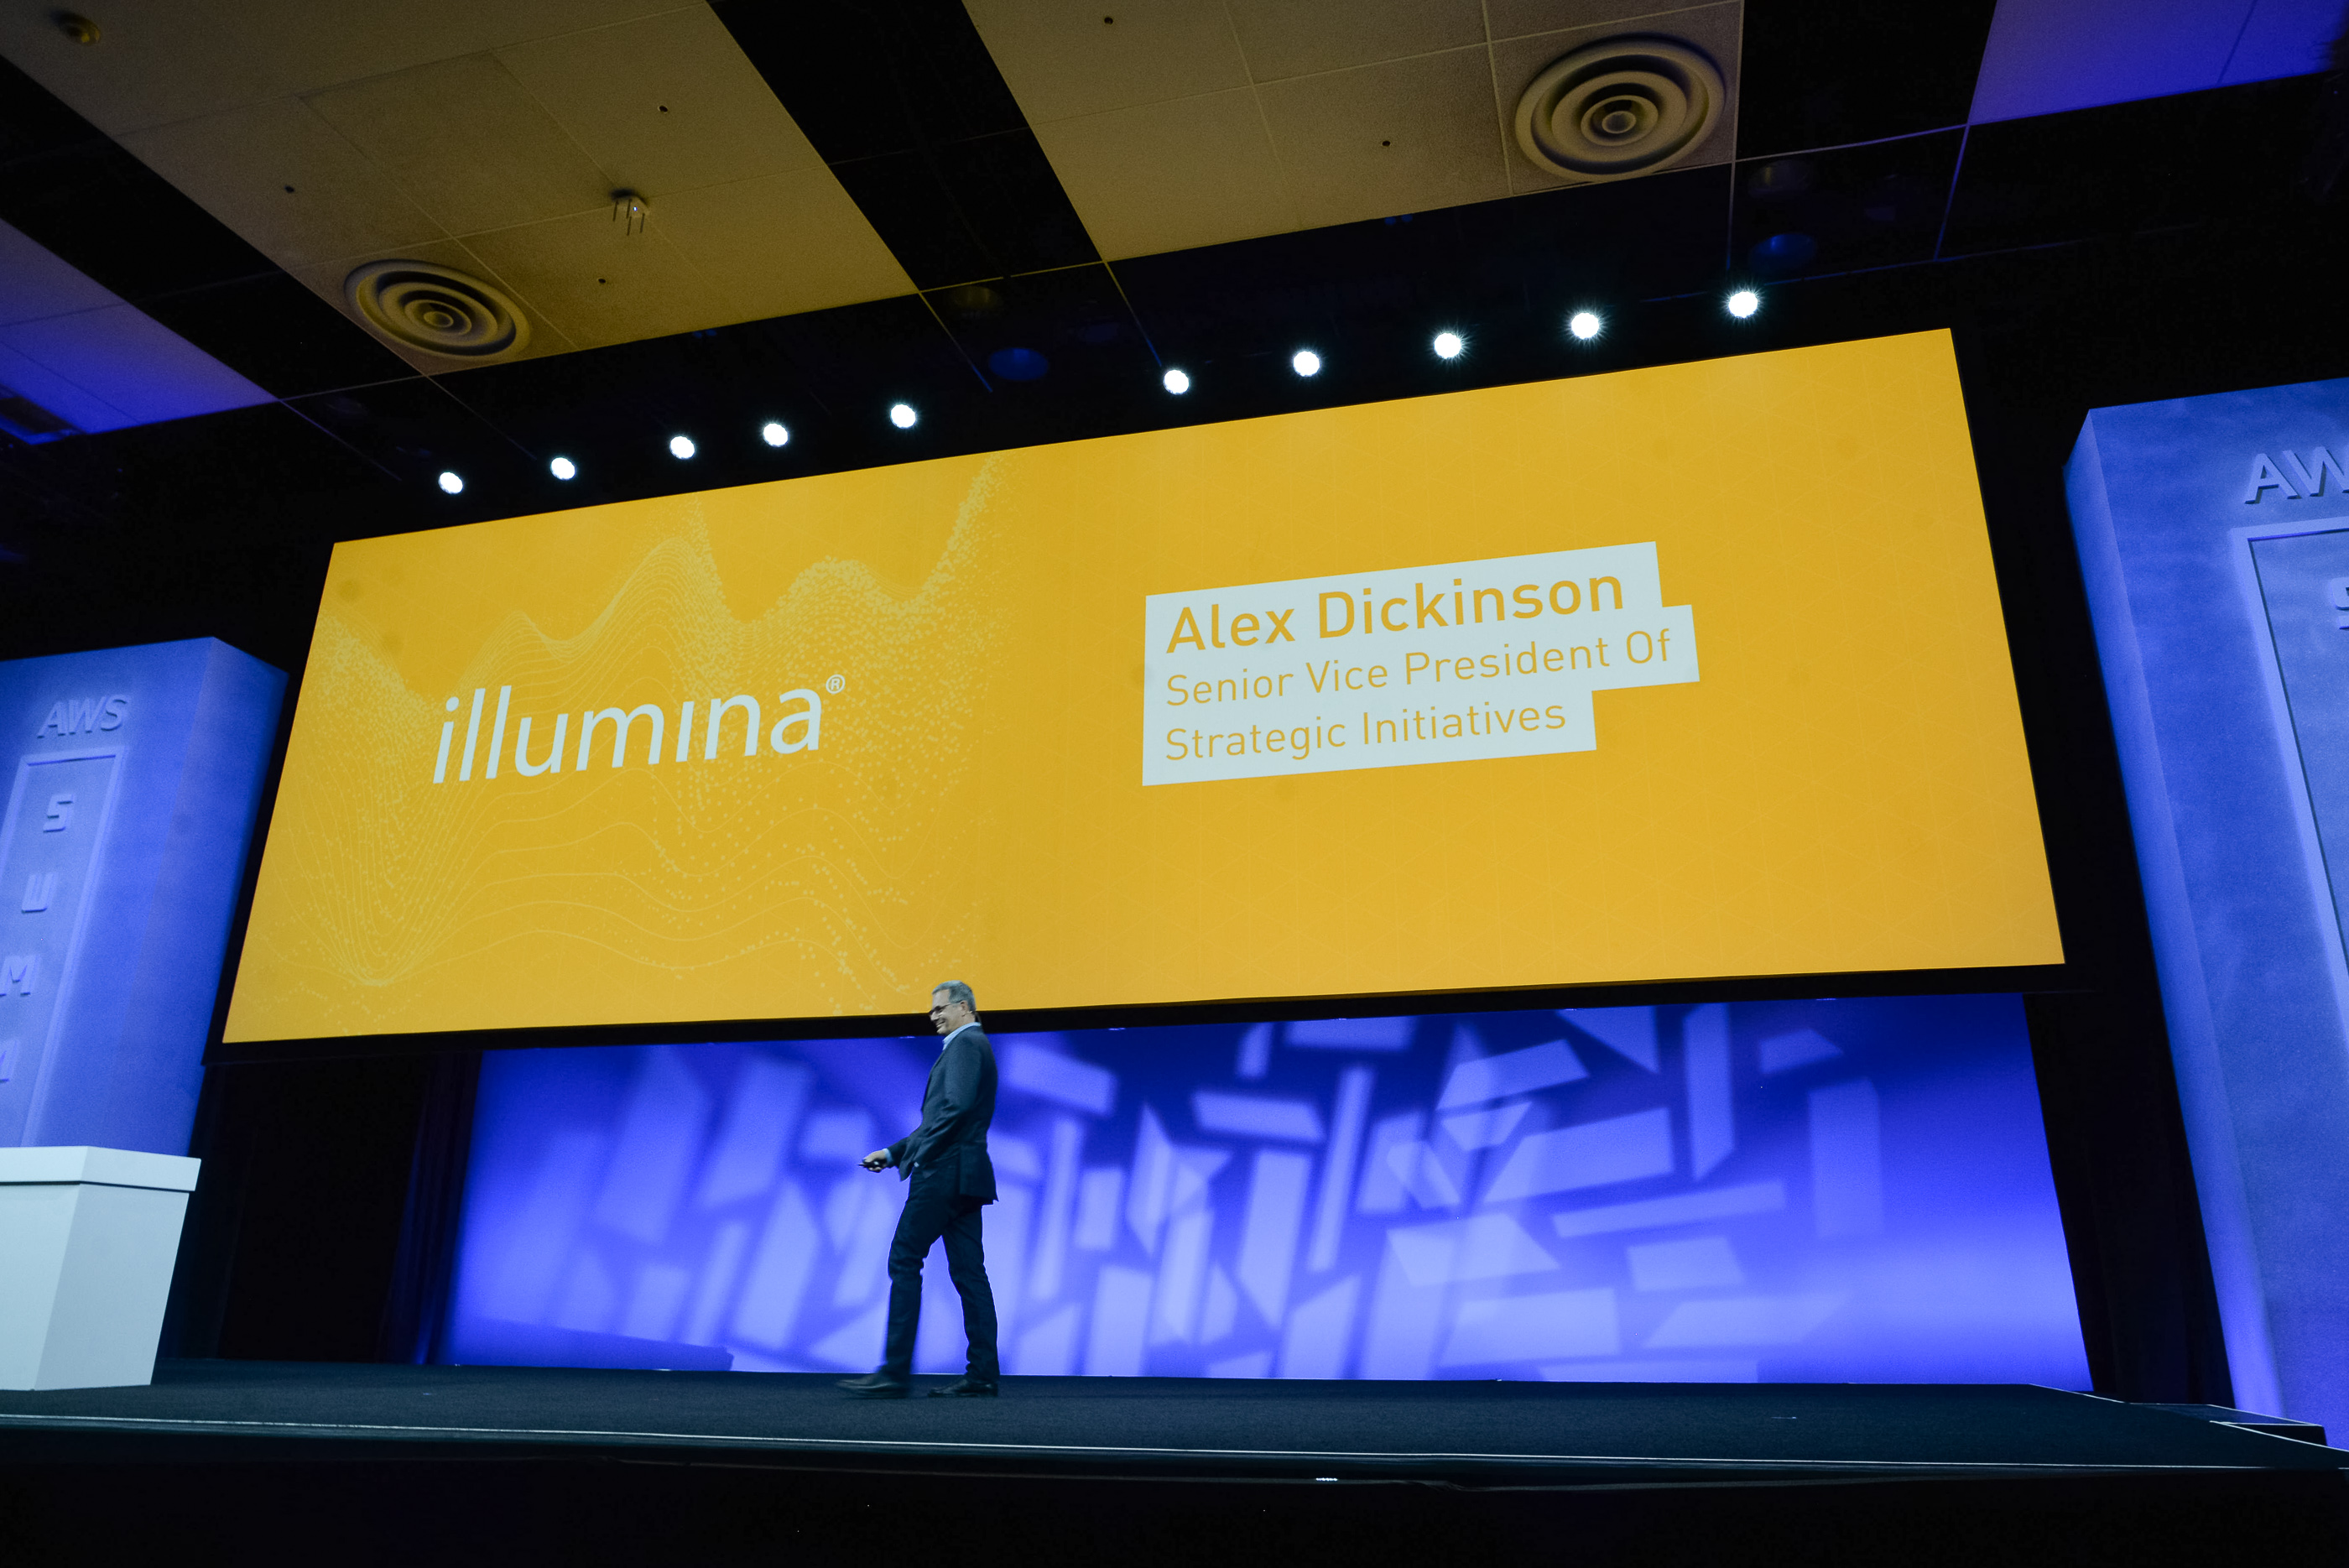 Alex Dickinson, SVP Strategic Initiatives, Illumina